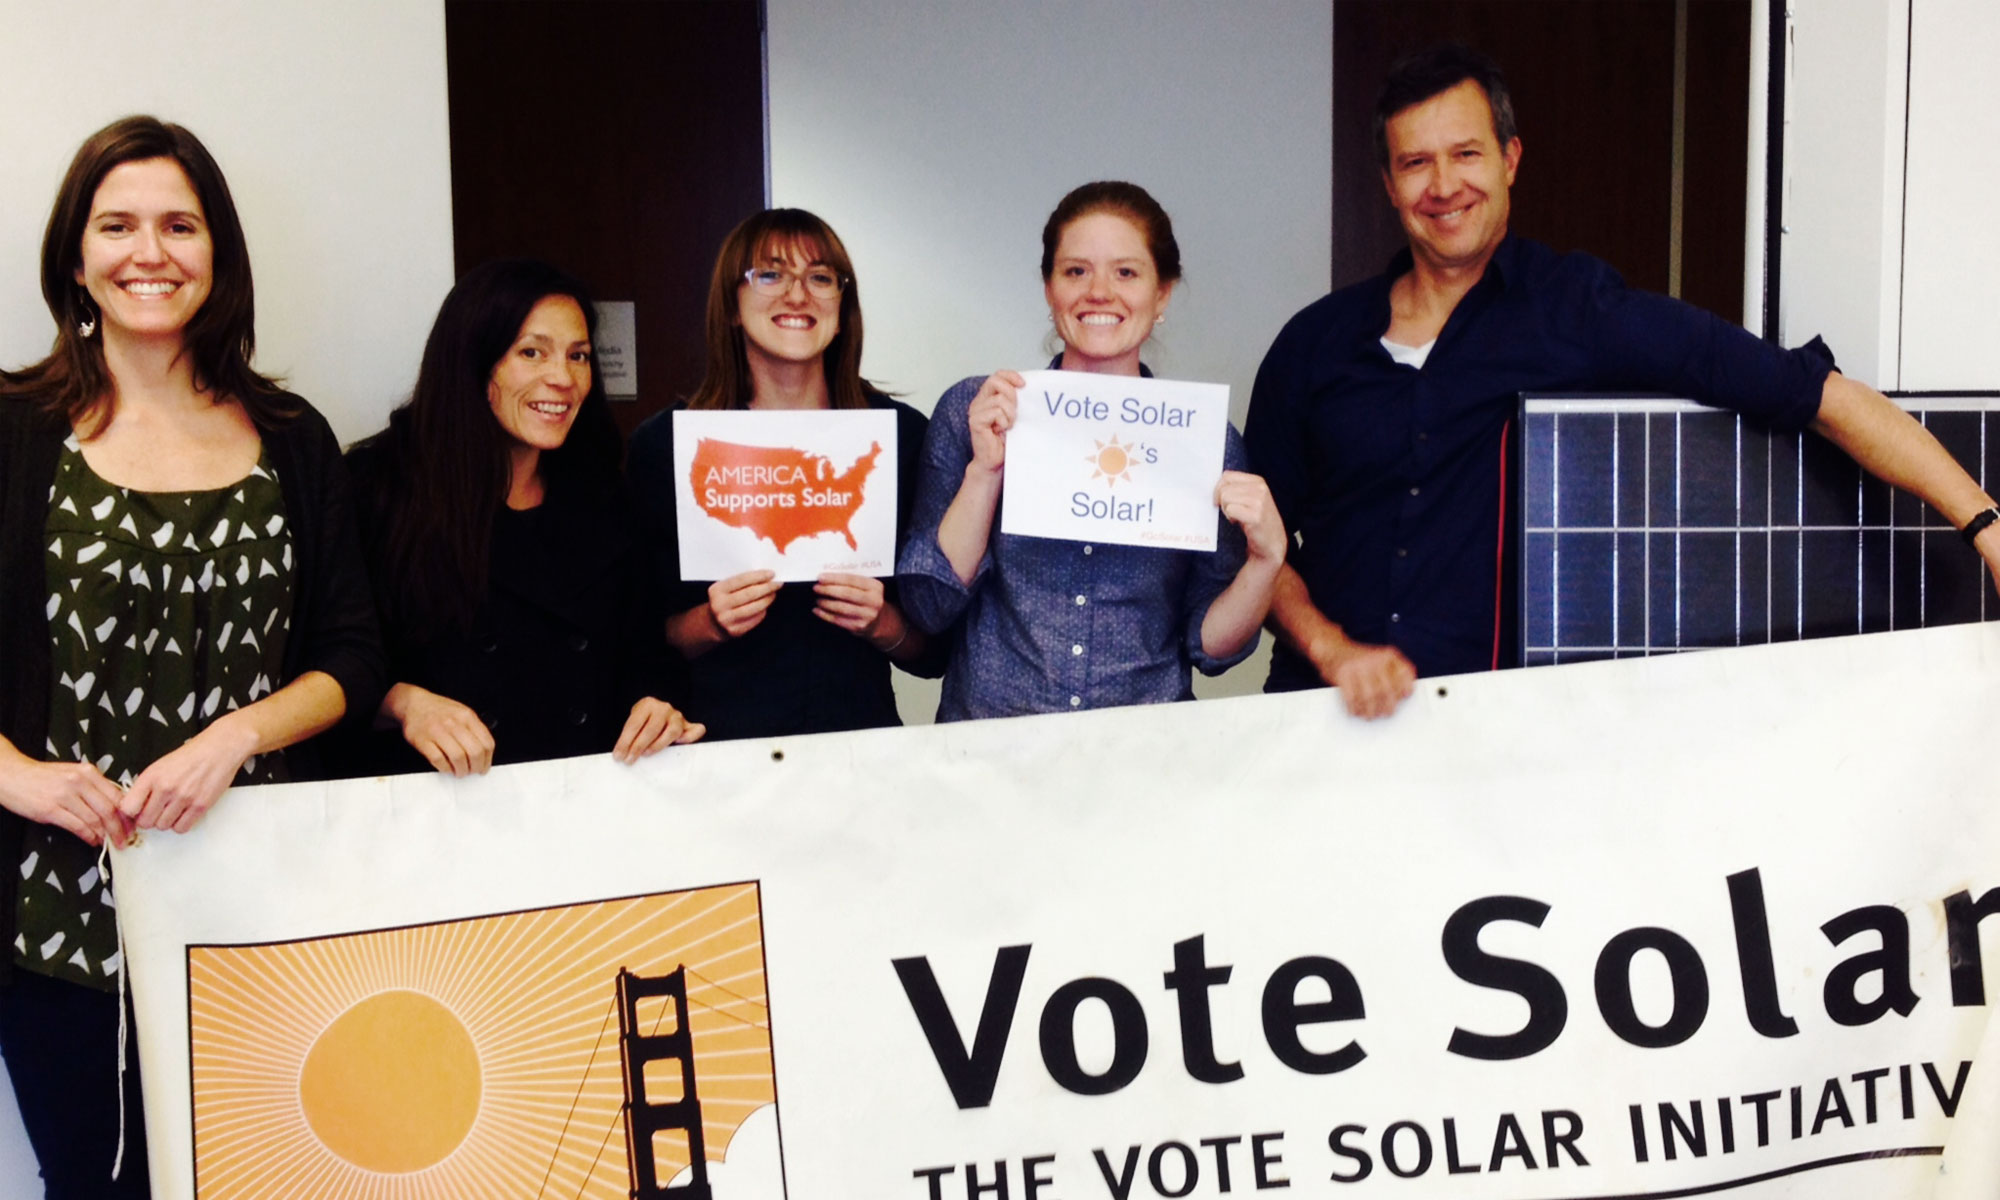 Our brightest days are ahead – Adam Browning's Farewell Letter to Vote Solarians